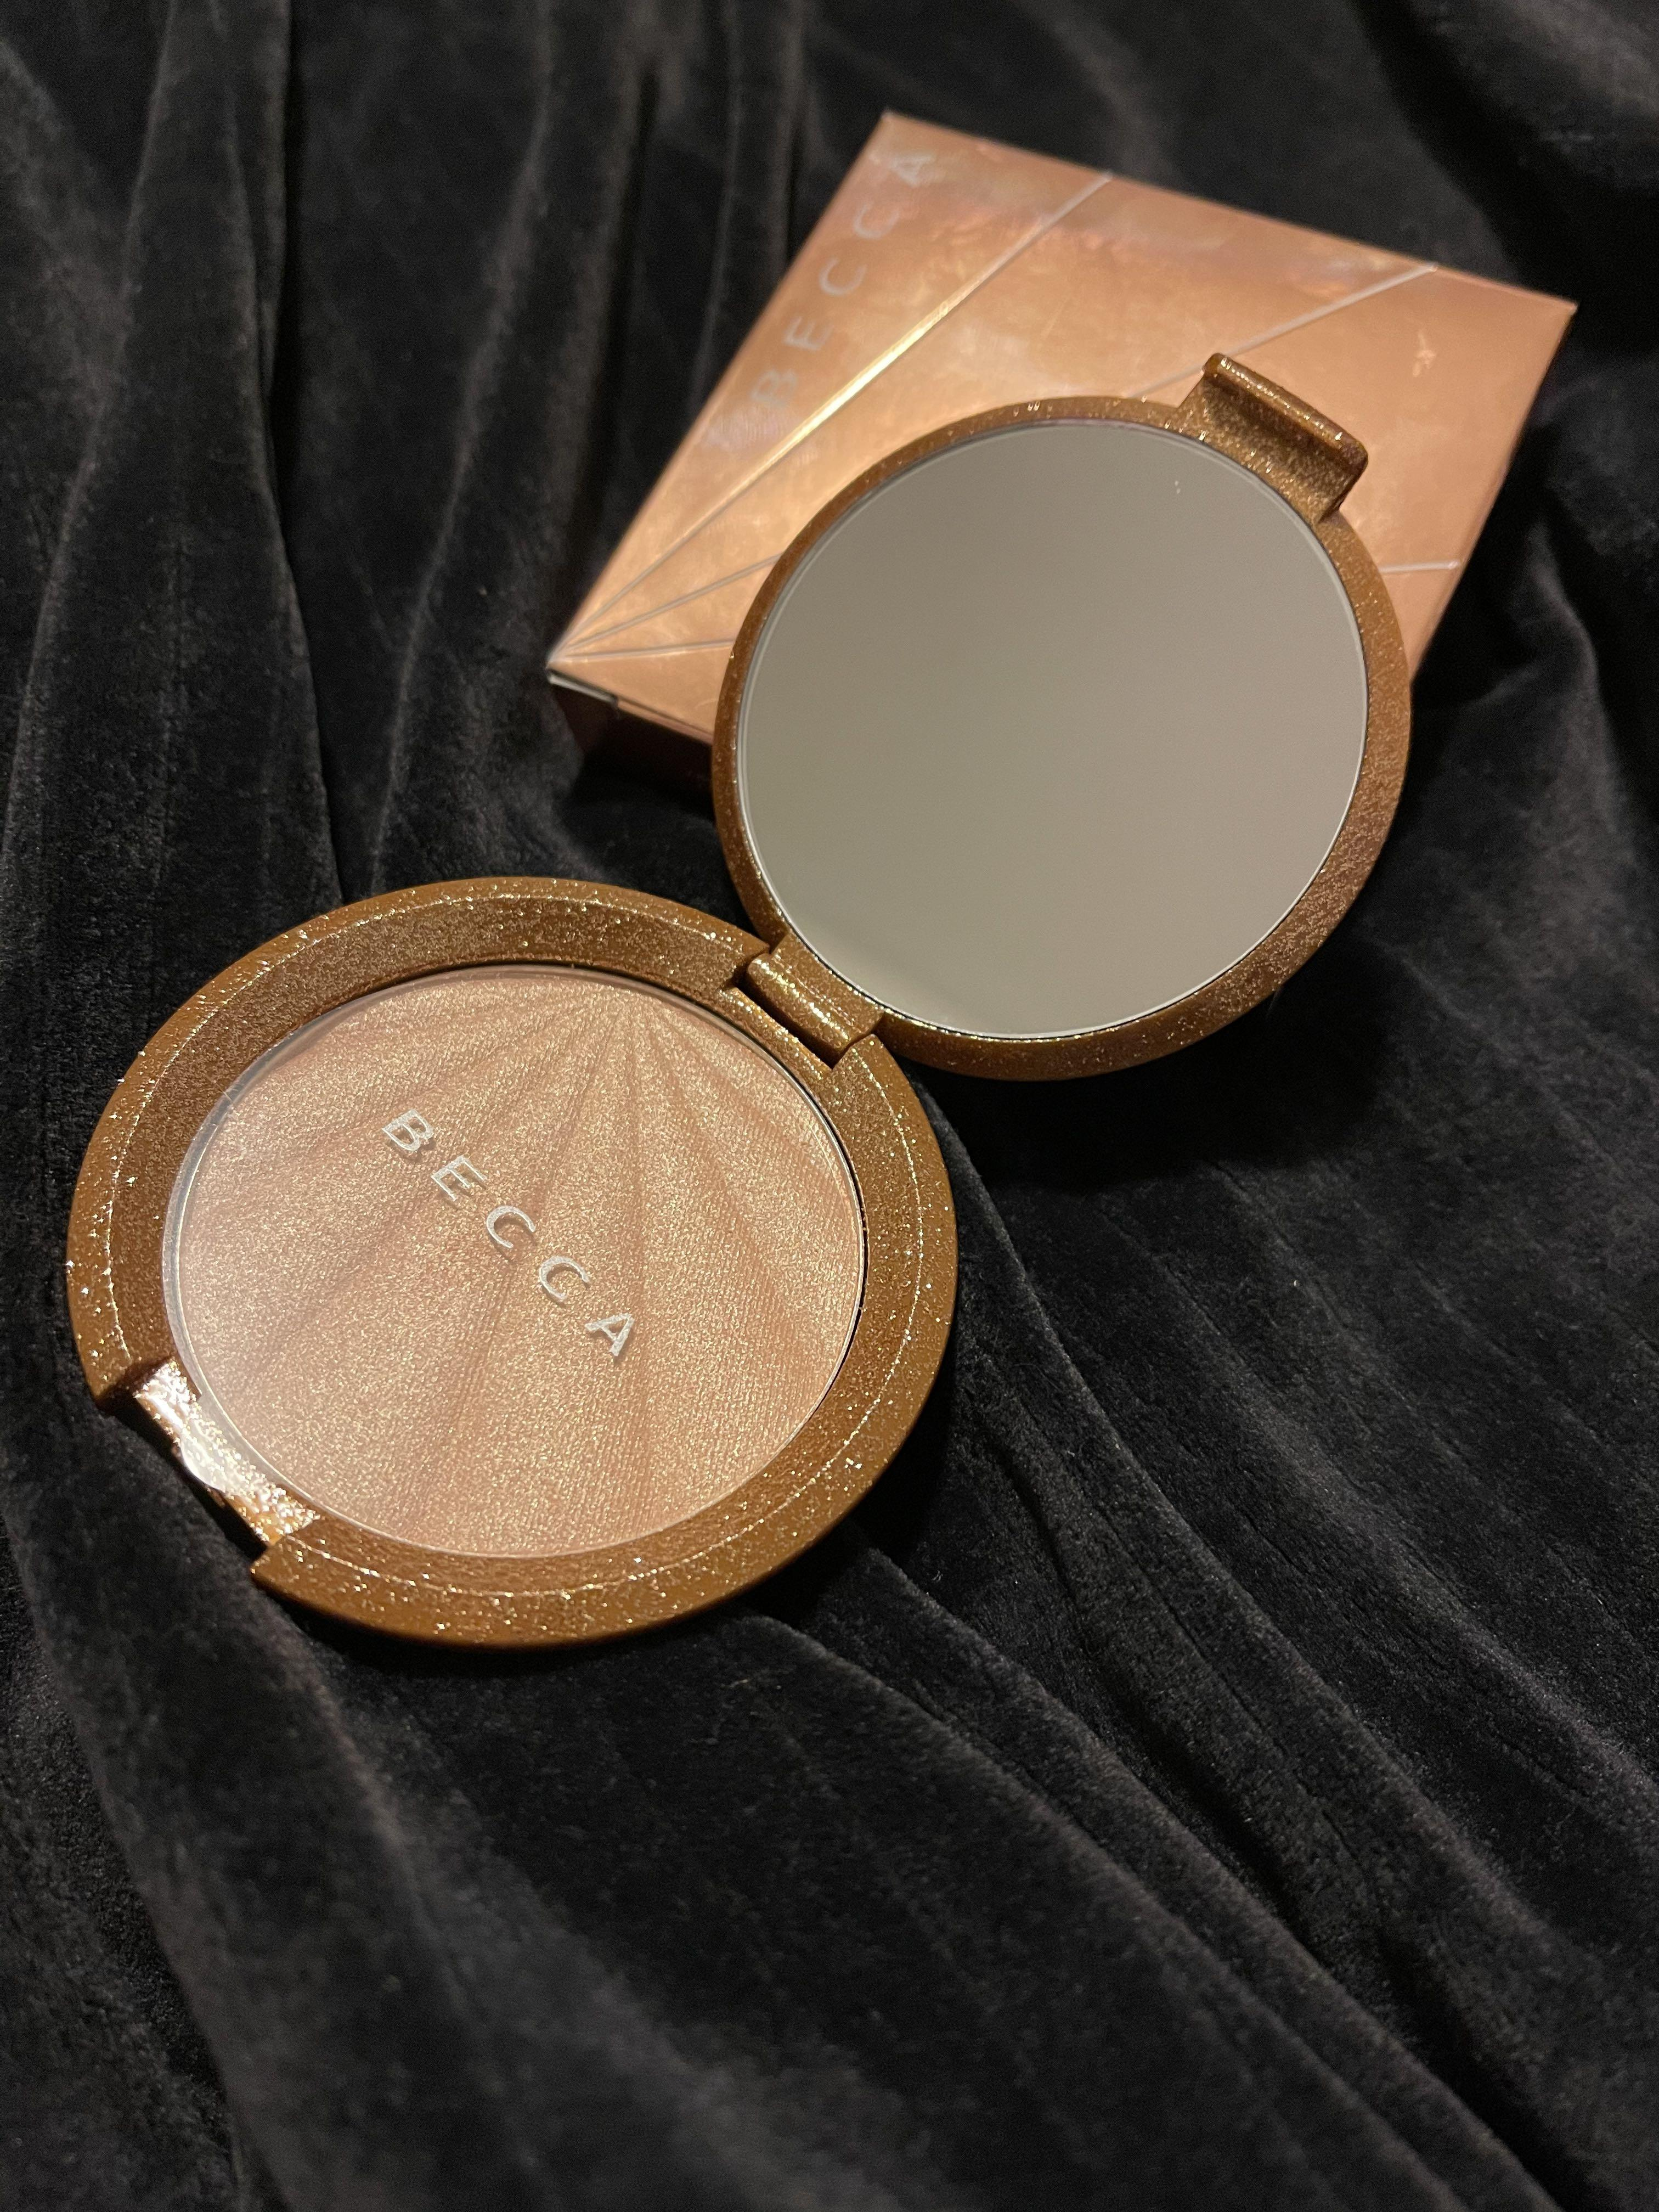 BECCA Collectors Edition Champagne Pop Highlight